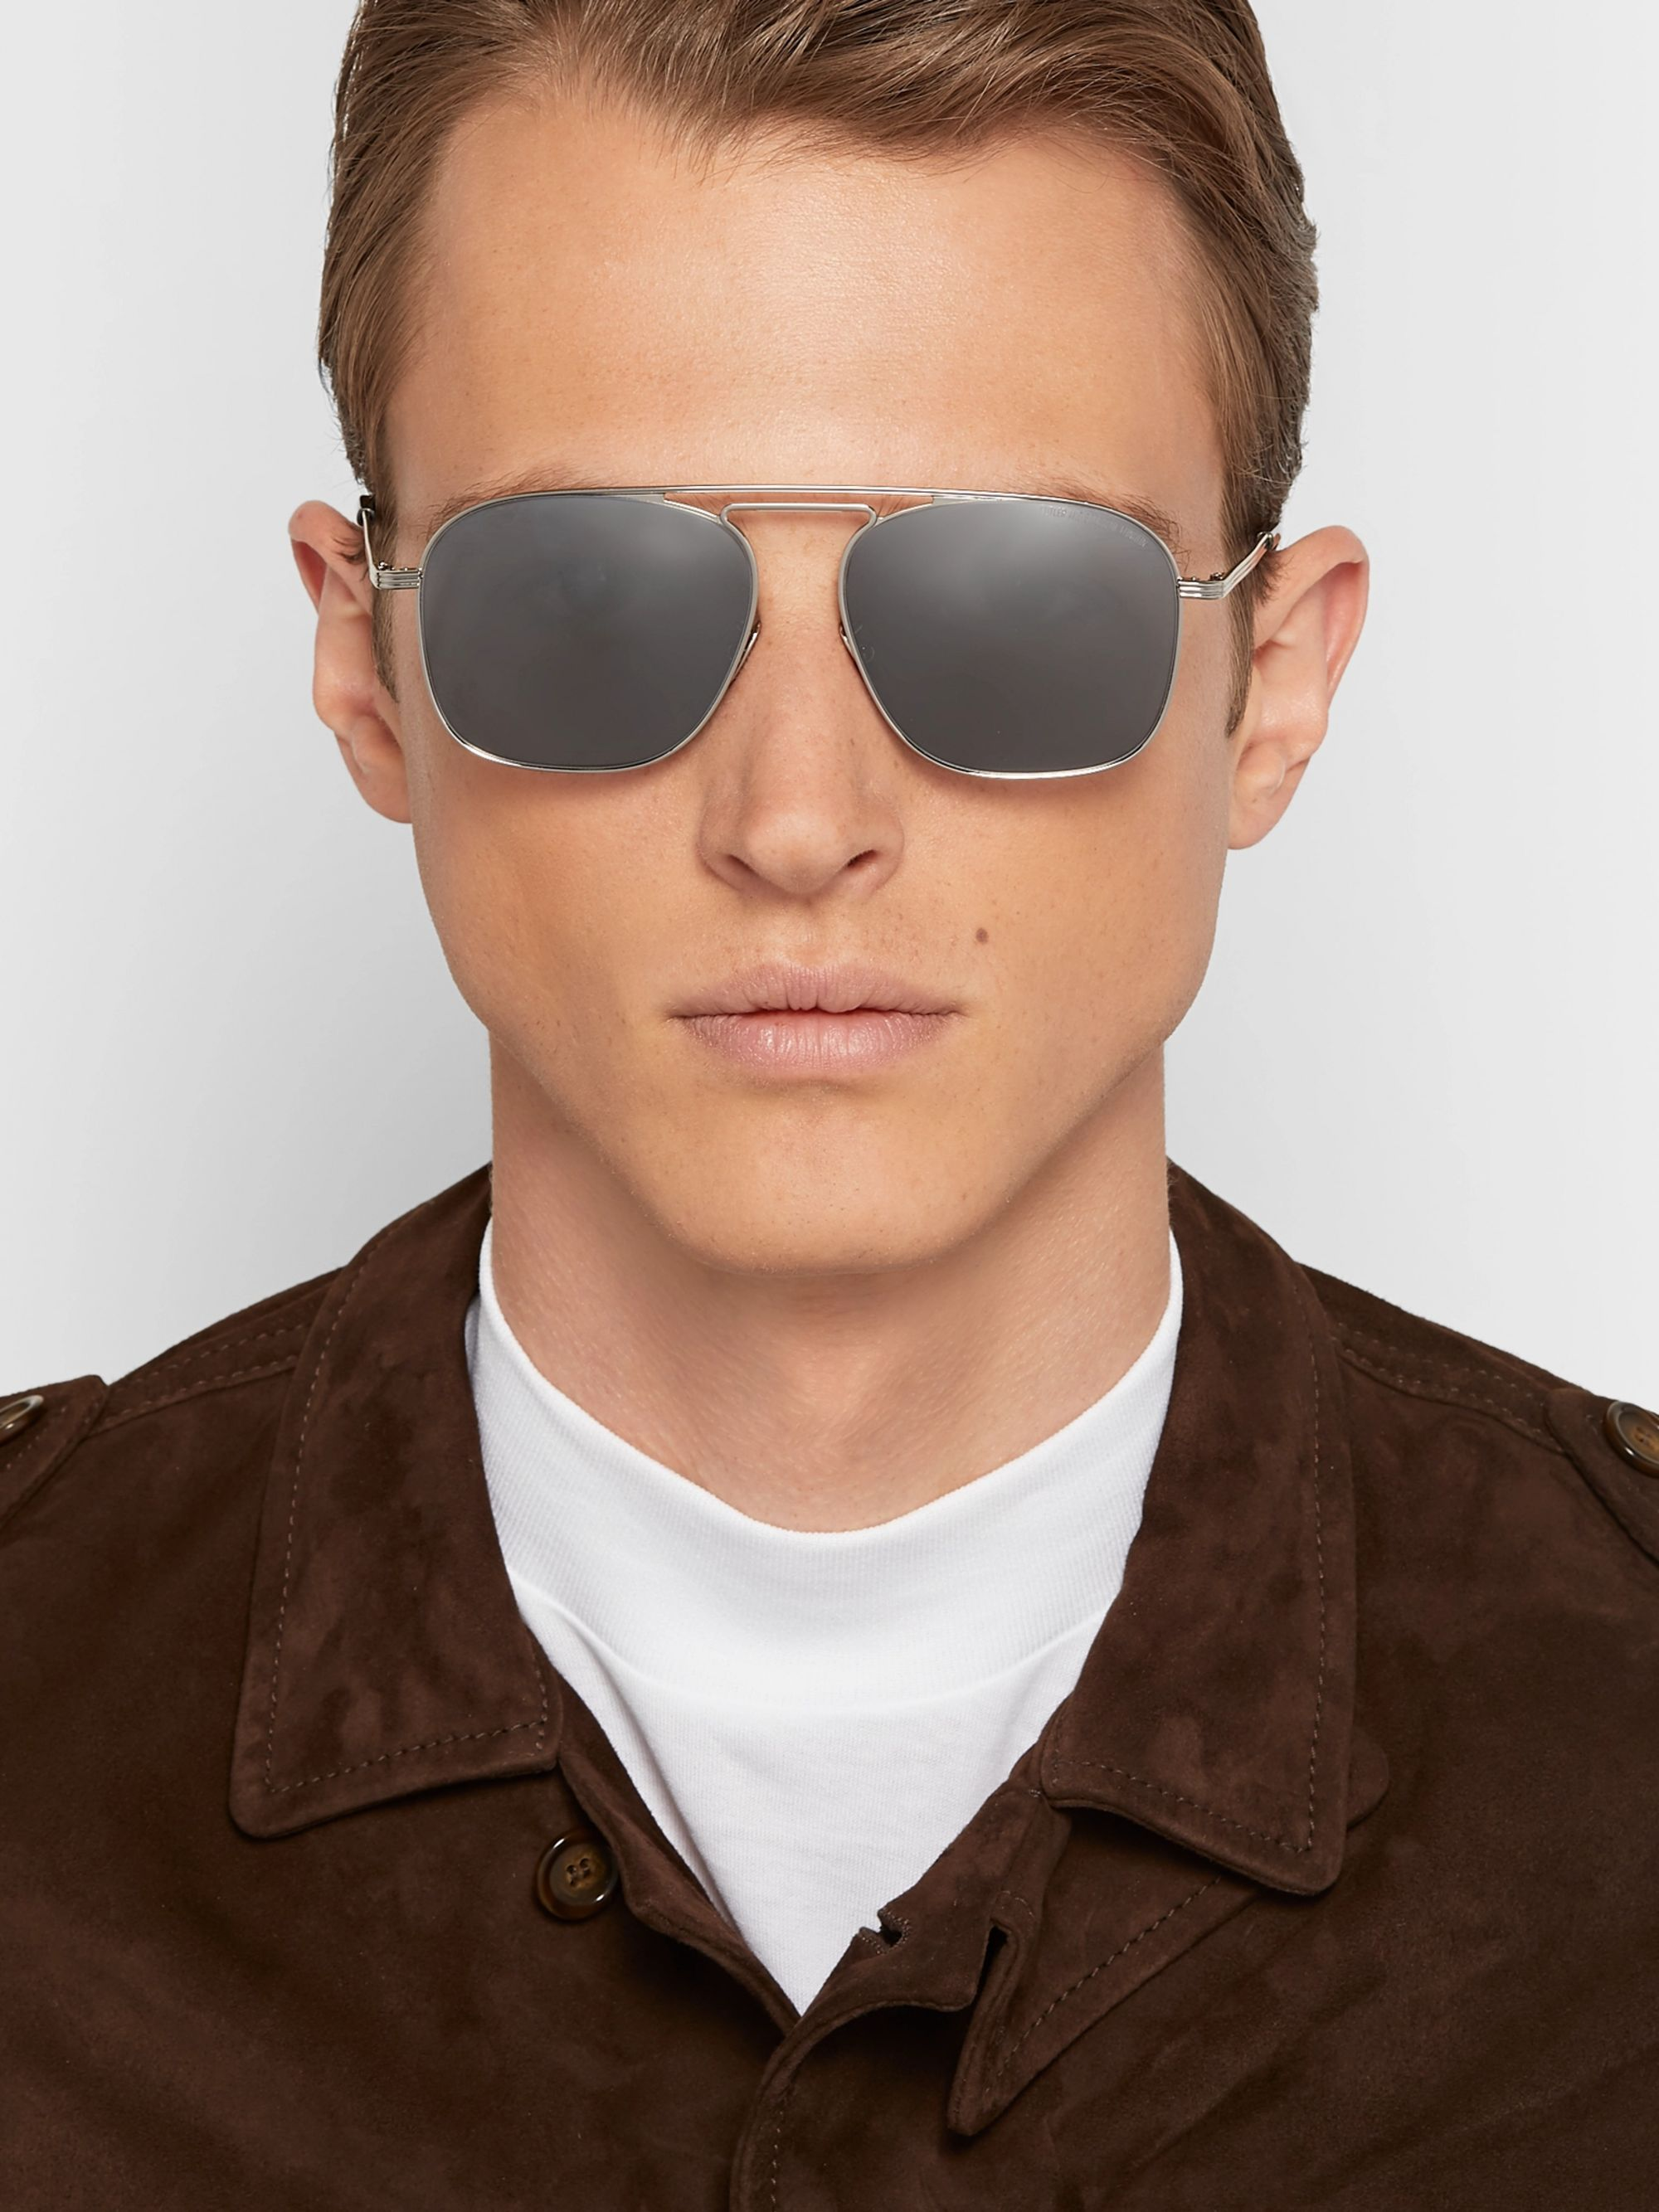 Cutler and Gross Aviator-Style Stainless Steel Sunglasses